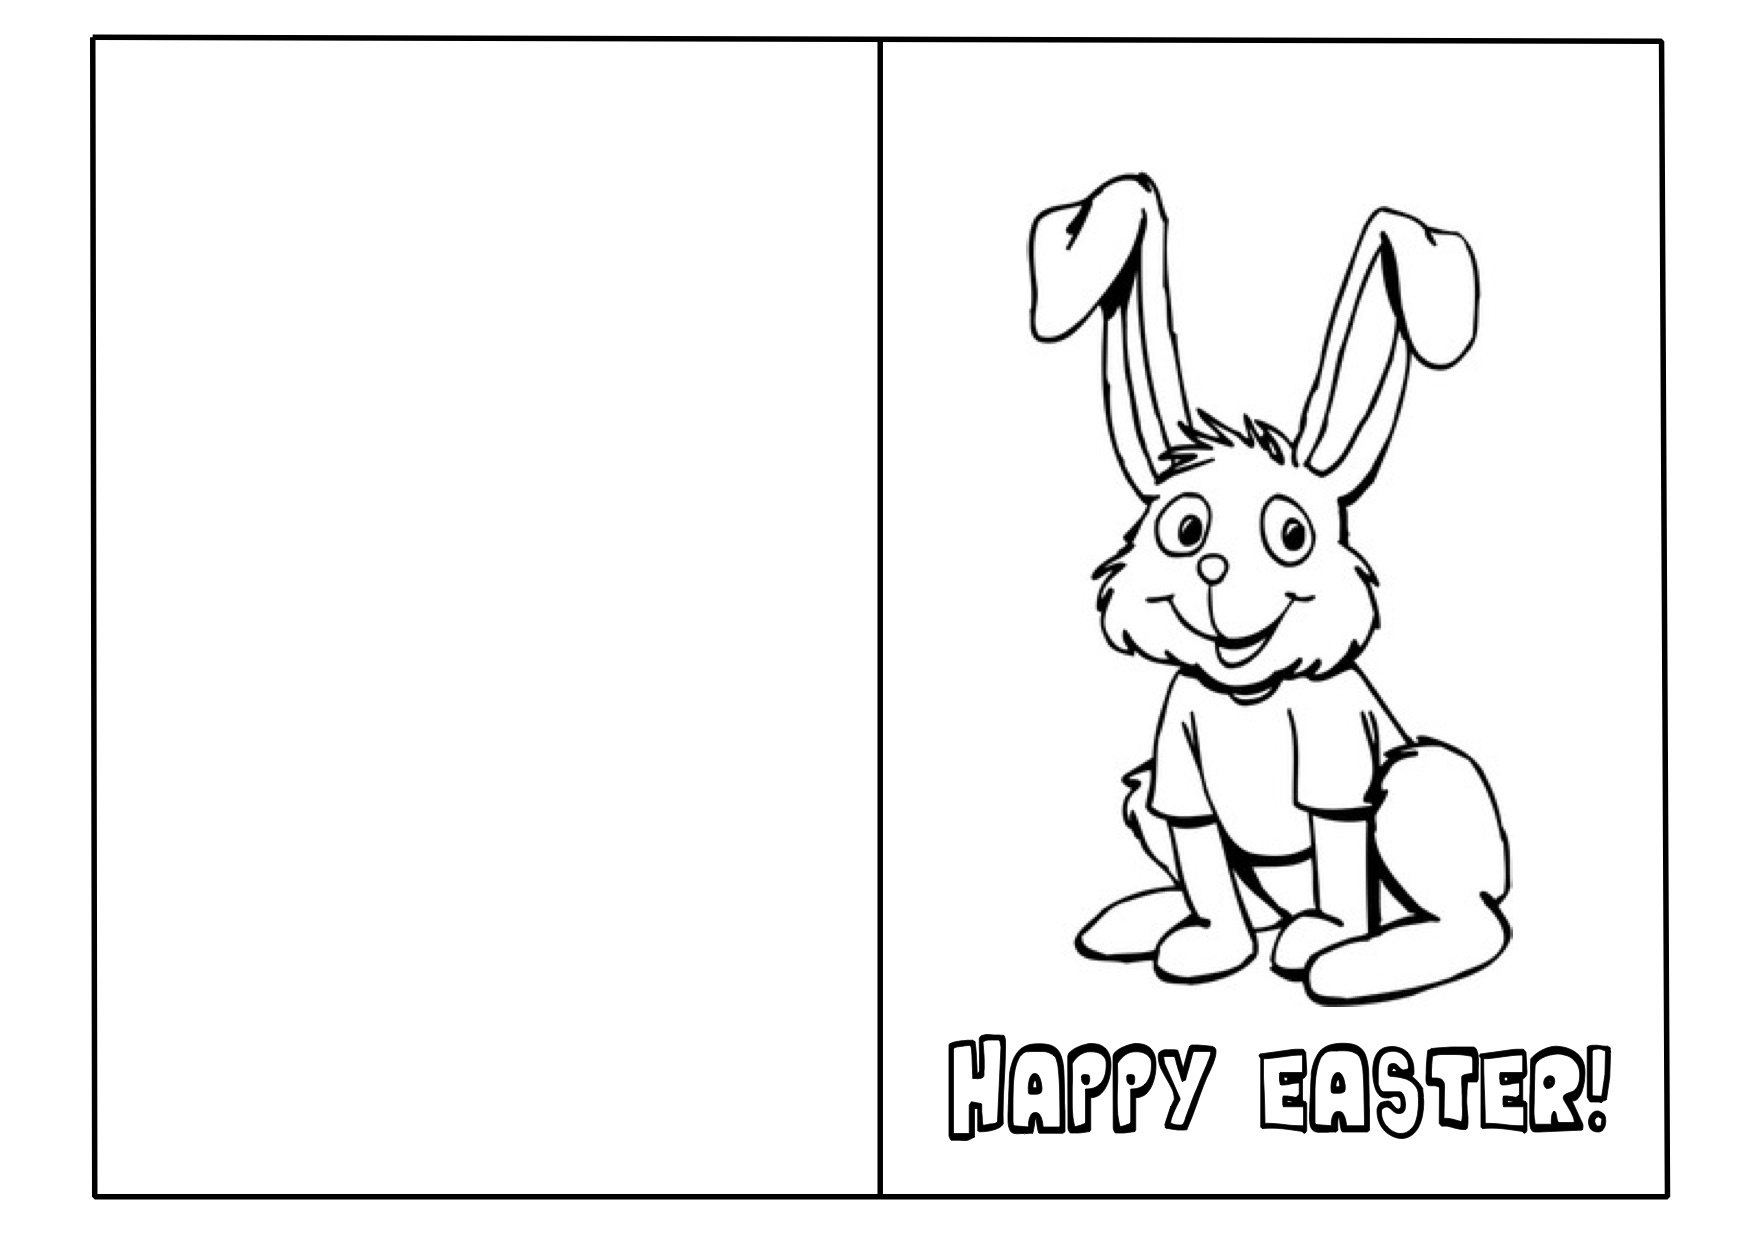 32 Free Printable Easter Cards | Kittybabylove - Free Printable Easter Cards